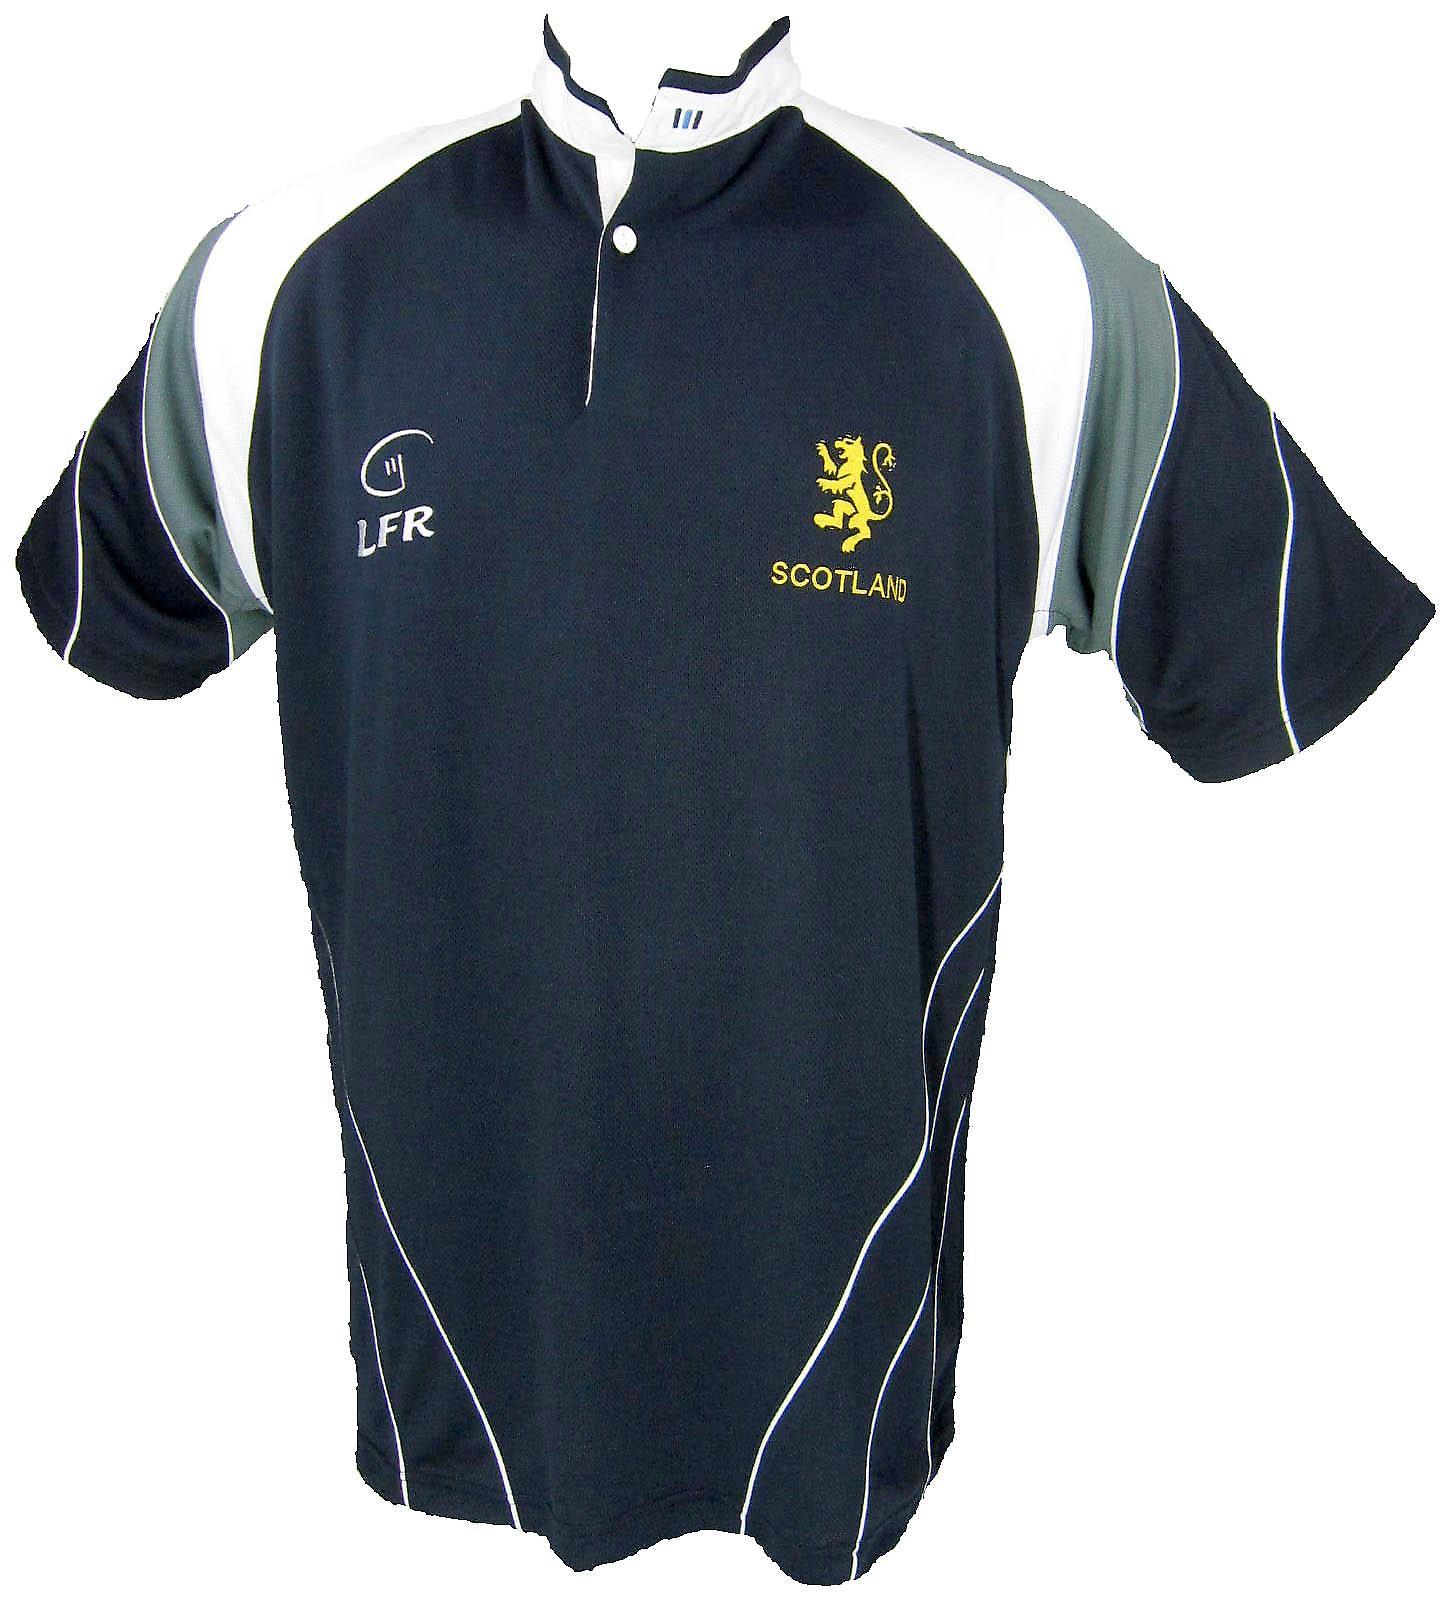 Scotland Lion Rampant Breathable Rugby Shirt by Live for Rugby Sizes XS - 3XL